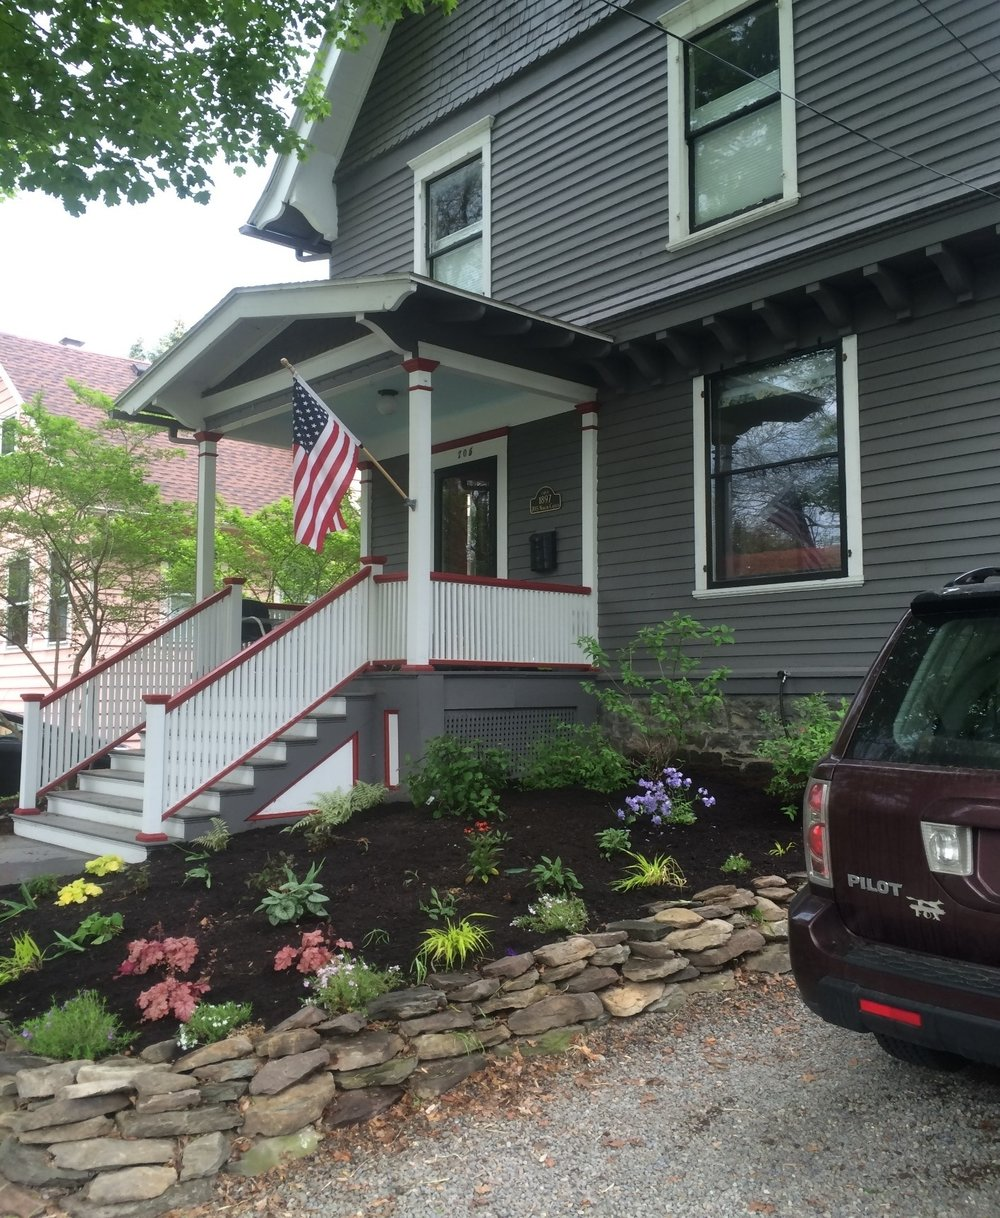 705 North Cayuga Street as it looks today.